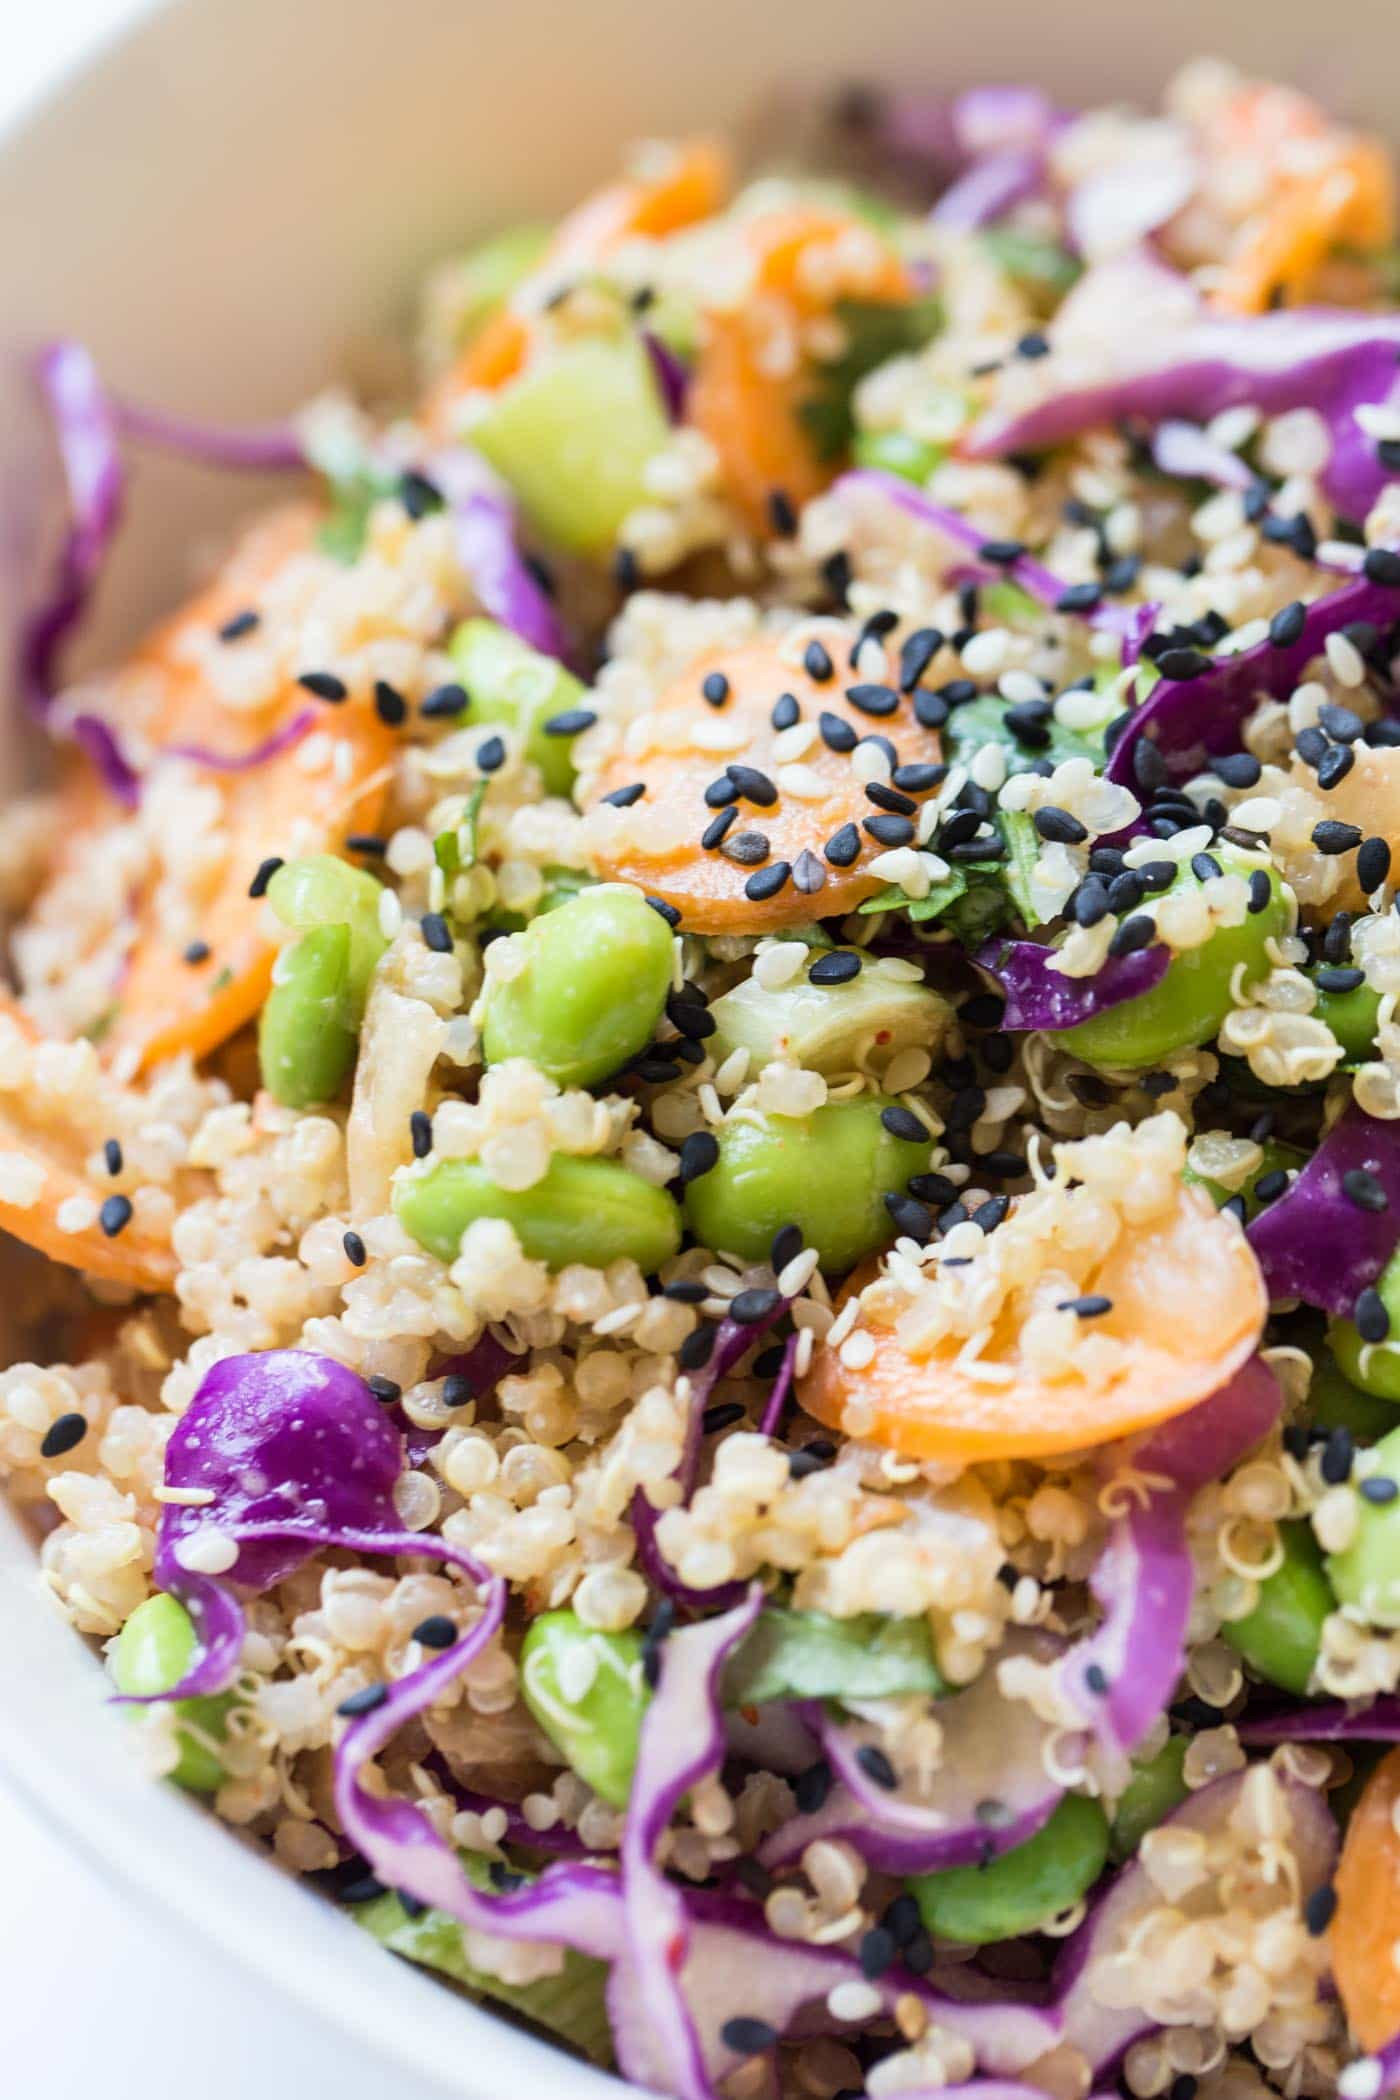 This super SIMPLE Asian Quinoa Power Salad is packed with protein, flavor and takes just 10 minutes to make!